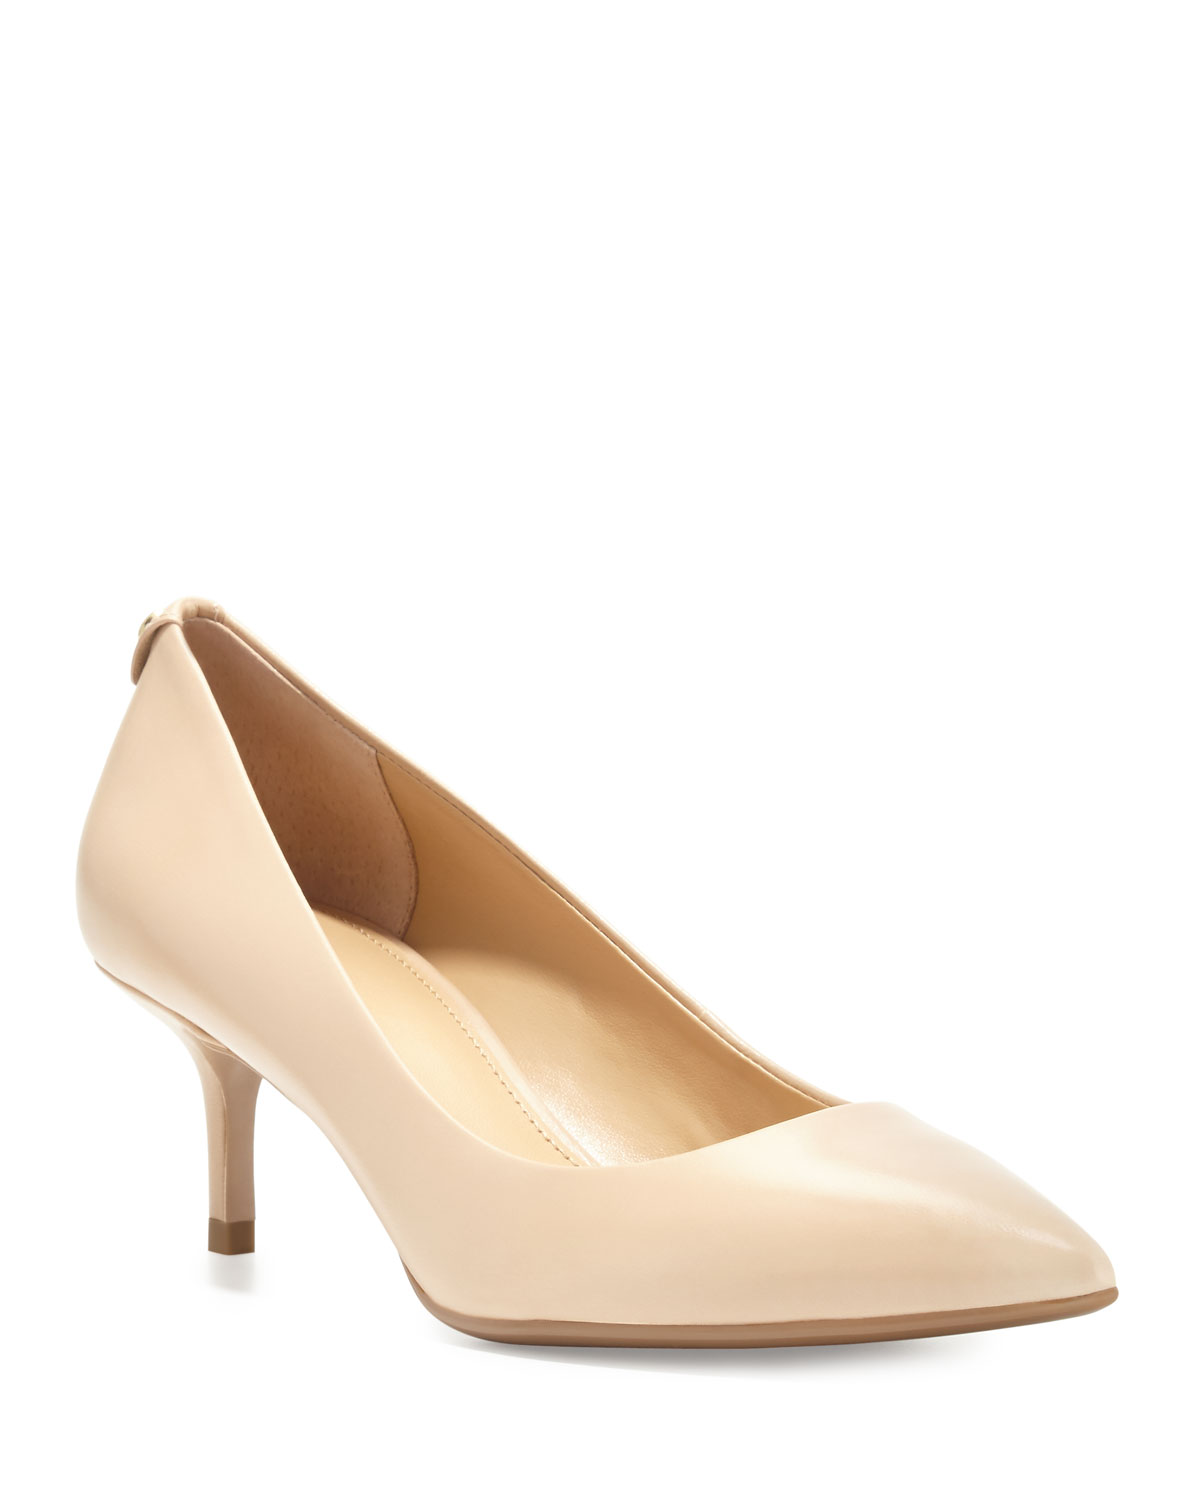 MK-Flex Leather Mid-Heel Pump, Nude